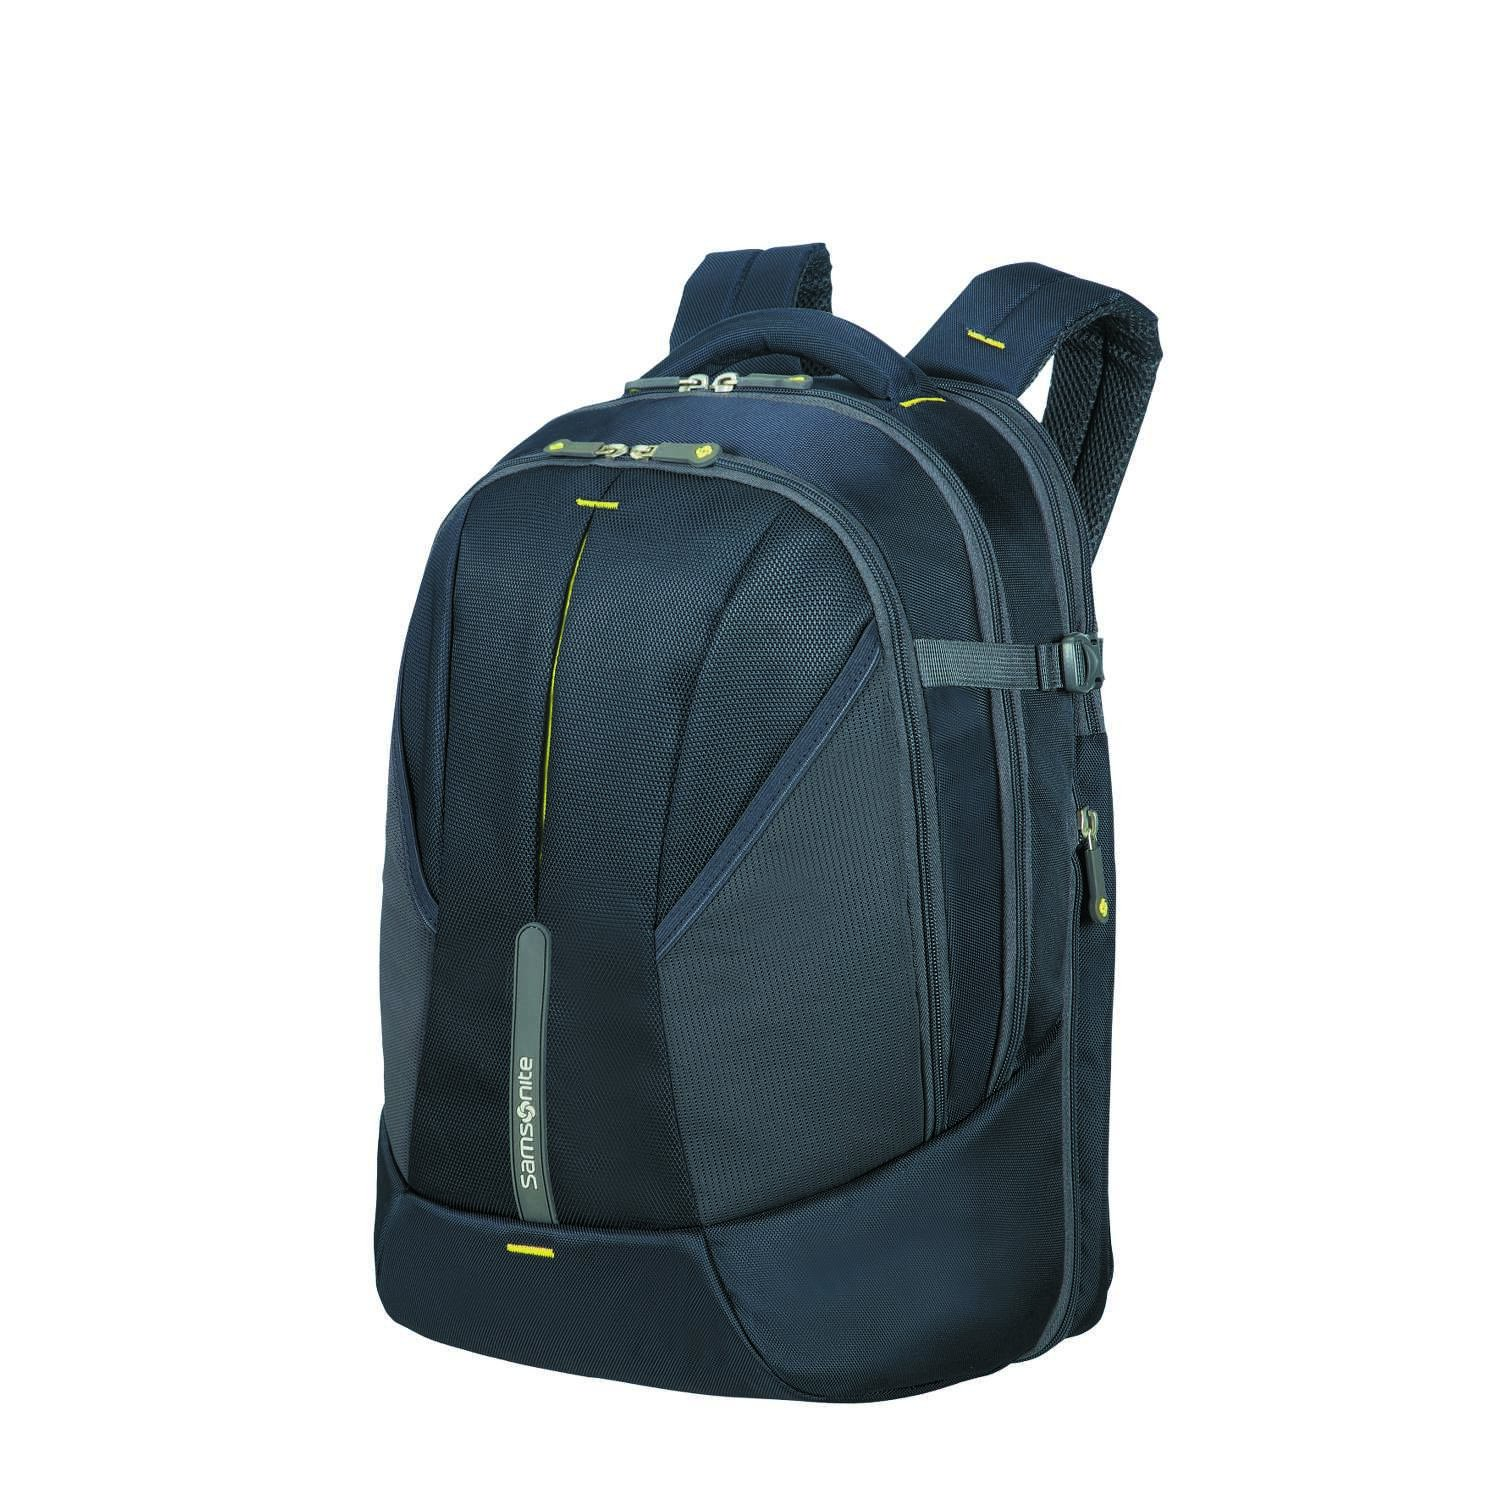 SAMSONITE 4mation - Laptop Backpack Mochila Tipo Casual, 46 cm, 34 Liters, Azul (Midnight Blue/Yellow): Amazon.es: Equipaje